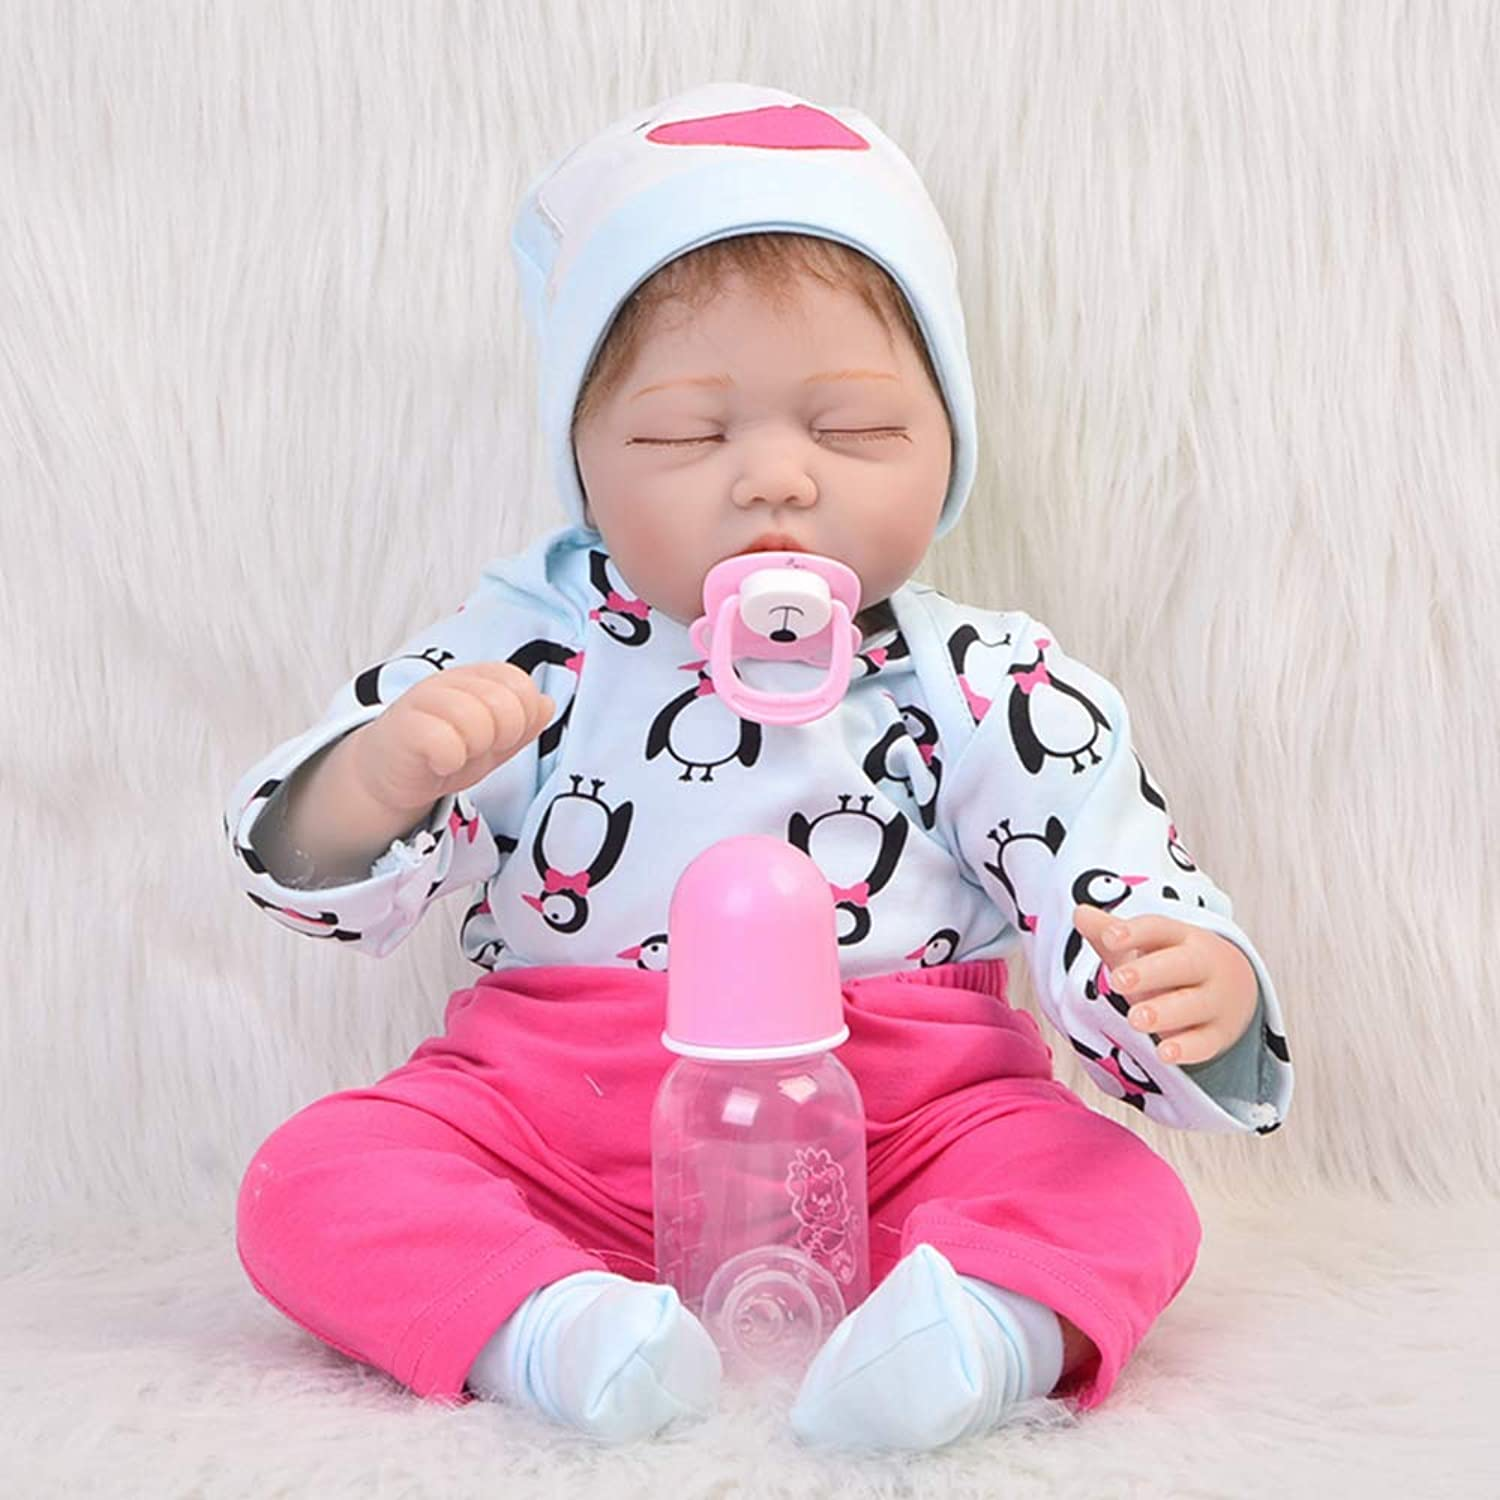 UBTY Realistic Eyes Closed Girl Reborn Baby Doll Soft Vinyl Silicone Magnetic Mouth Newborn Xmas Gifts 22inch 55cm